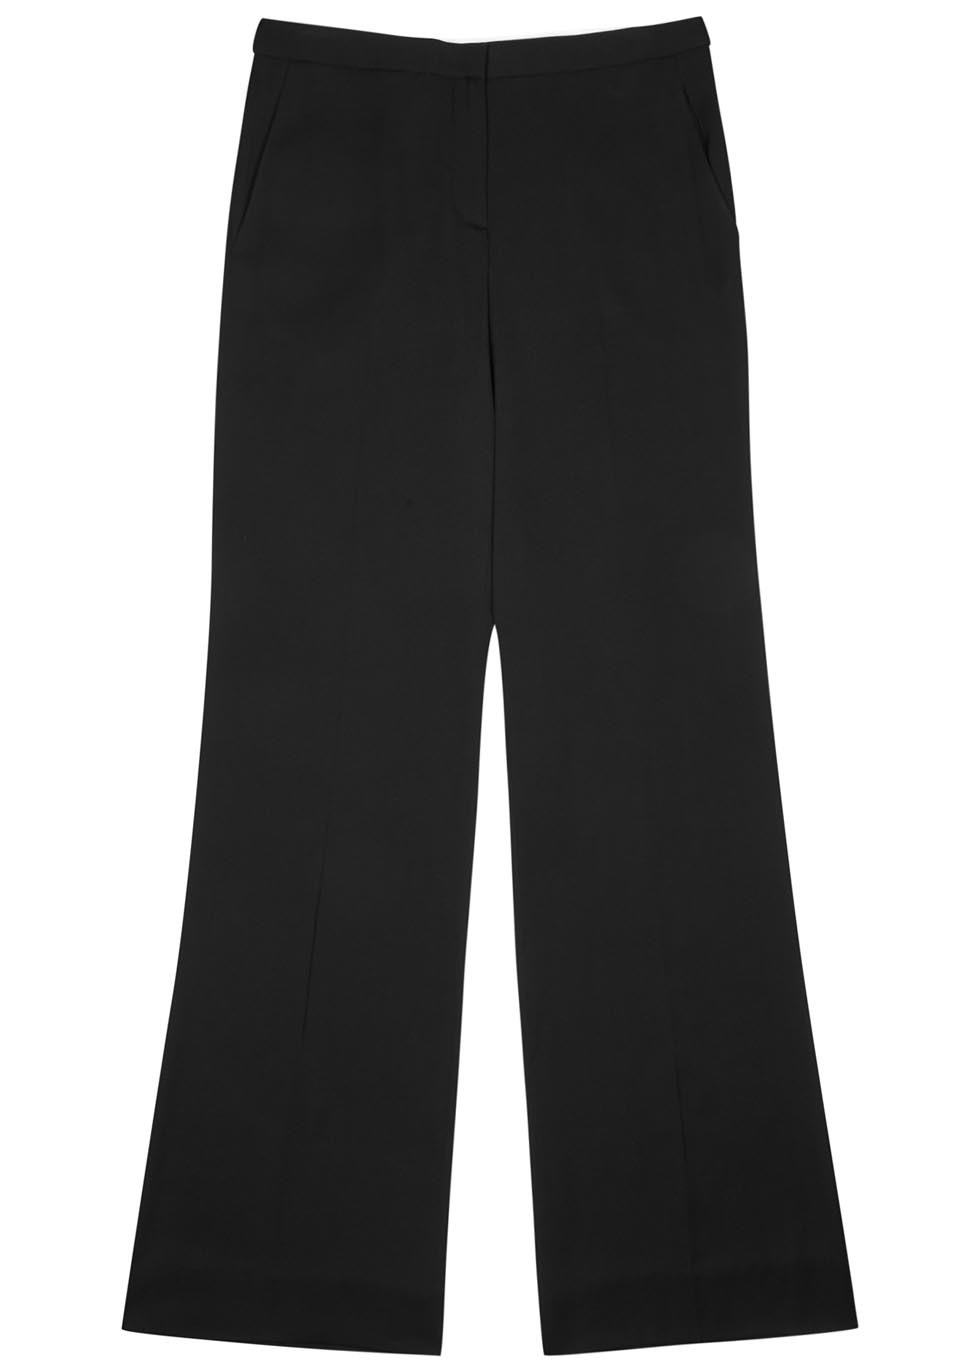 Katara Black Wide Leg Silk Trousers - length: standard; pattern: plain; style: palazzo; waist: mid/regular rise; predominant colour: black; occasions: evening, creative work; fibres: silk - mix; texture group: crepes; fit: wide leg; pattern type: fabric; season: s/s 2016; wardrobe: basic